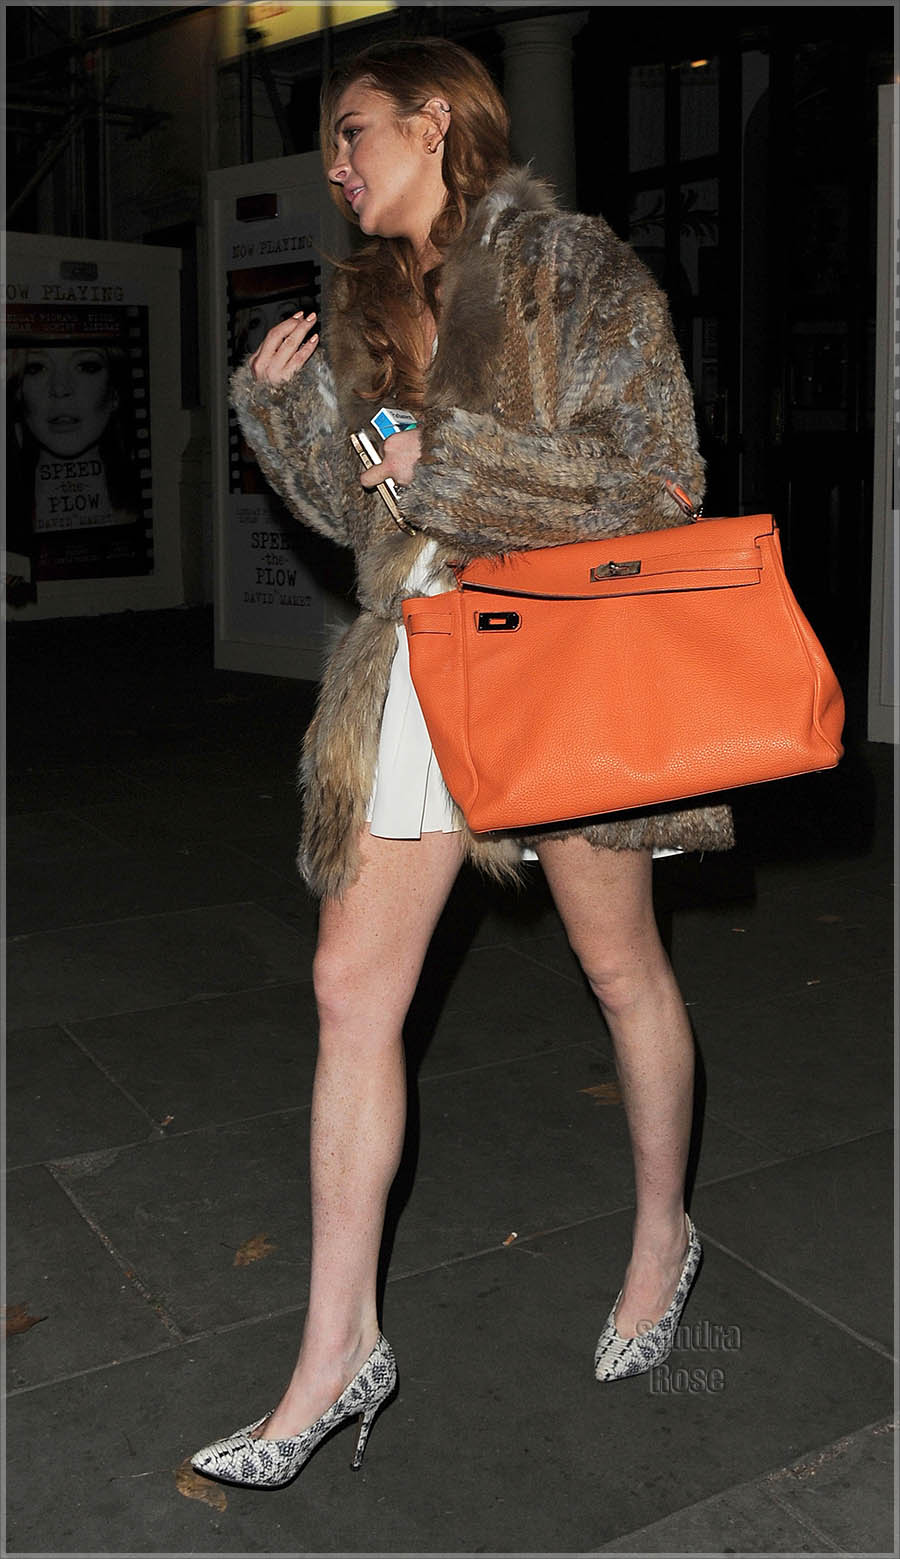 Lindsay Lohan leaving the Playhouse theatre